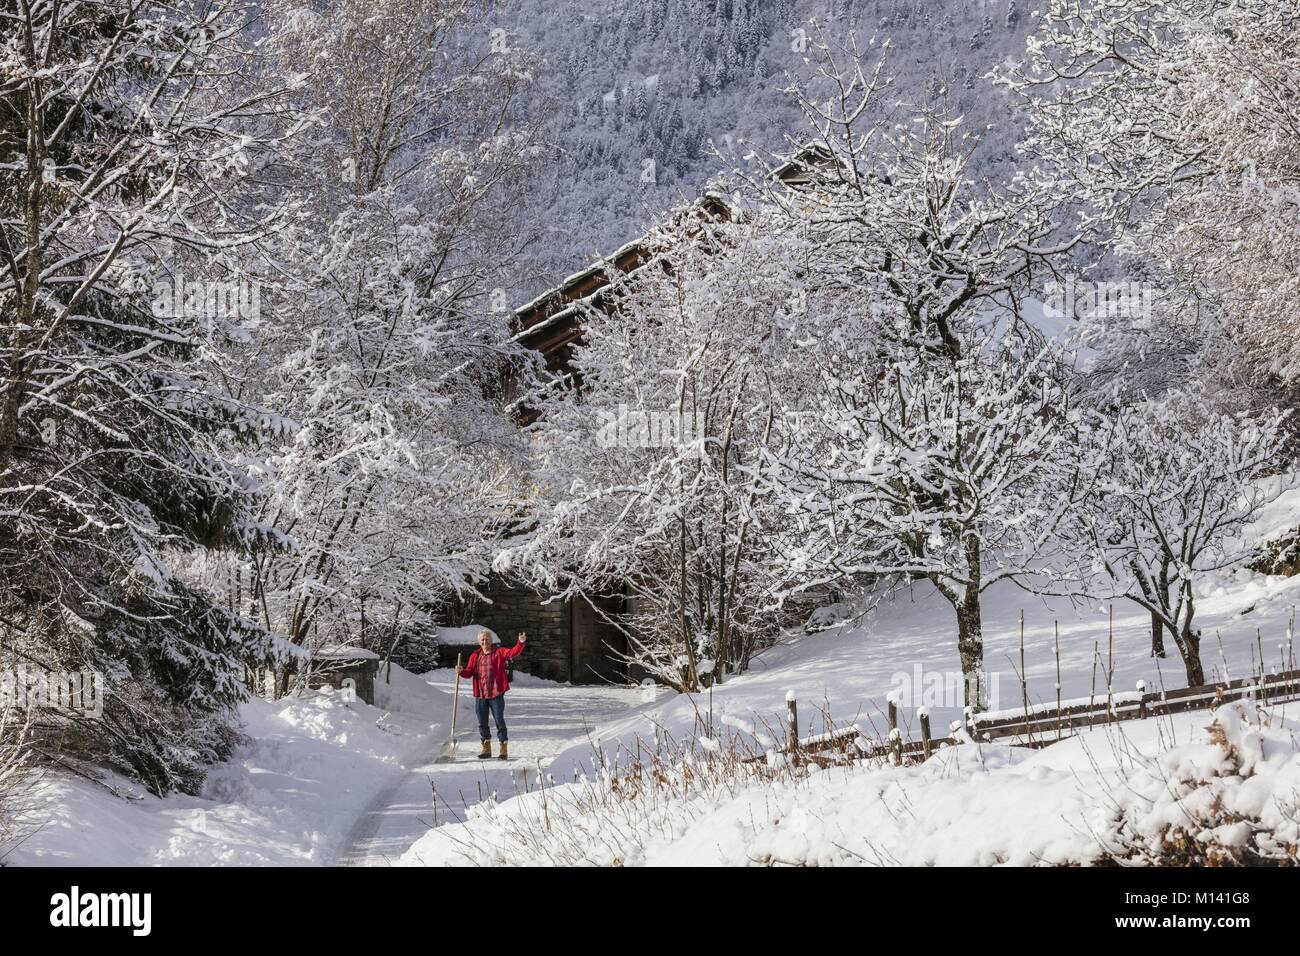 France, Savoie, Aigueblanche, Tarentaise valley, - Stock Image